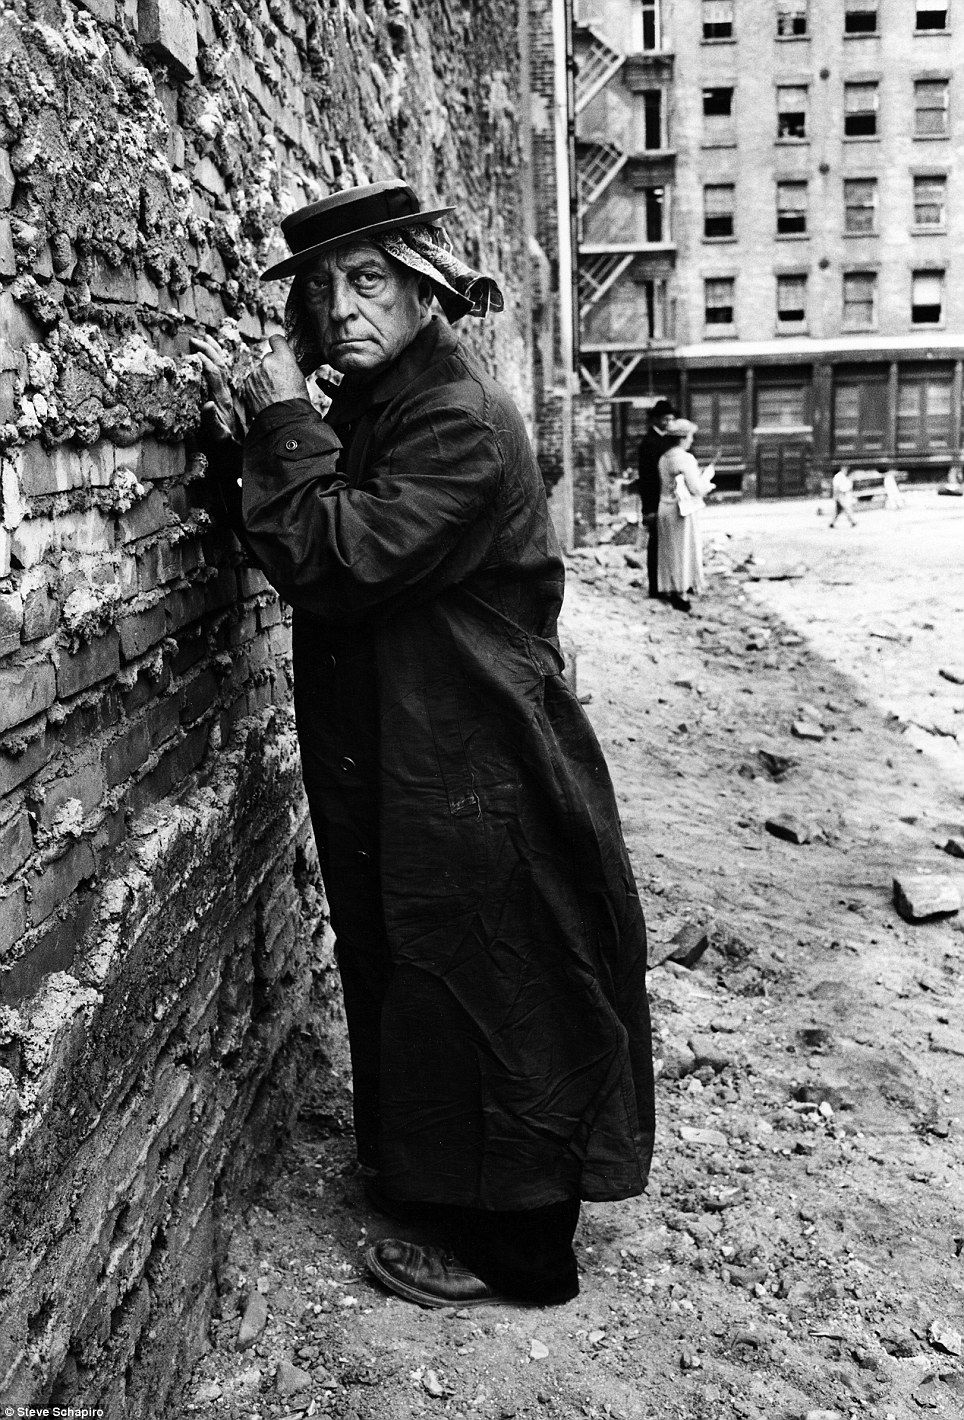 The photography of Steve #Schapiro - Actor Buster #Keaton looks almost as grim as the moody setting as he poses against a wall